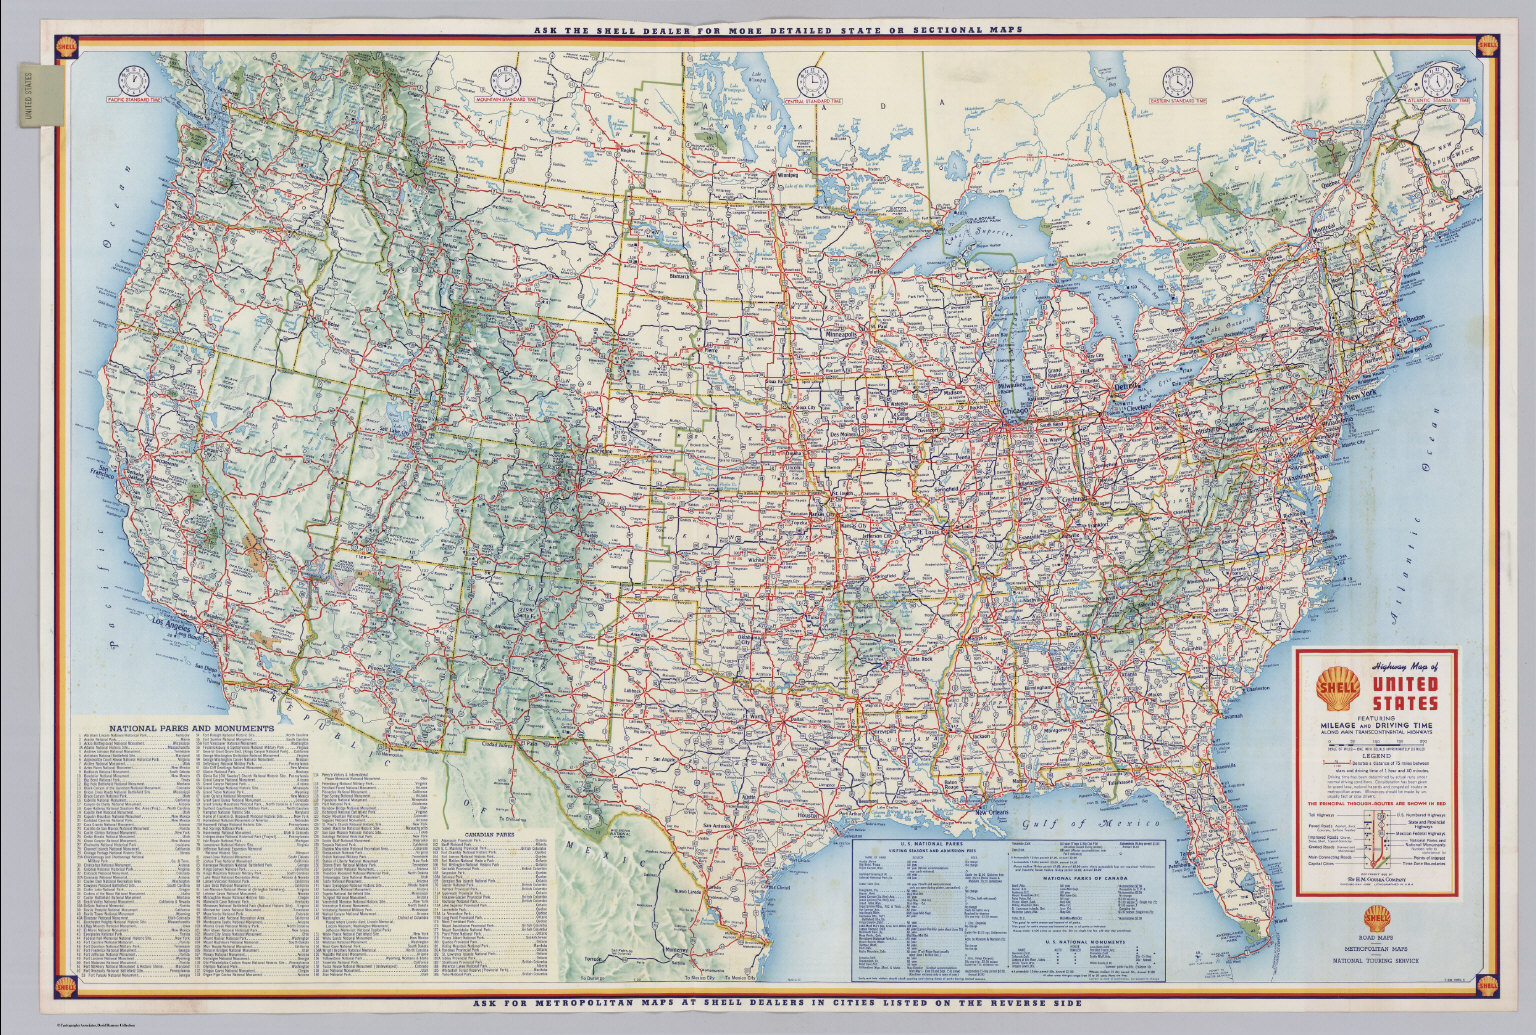 Shell Highway Map Of United States David Rumsey Historical Map - Us driving map